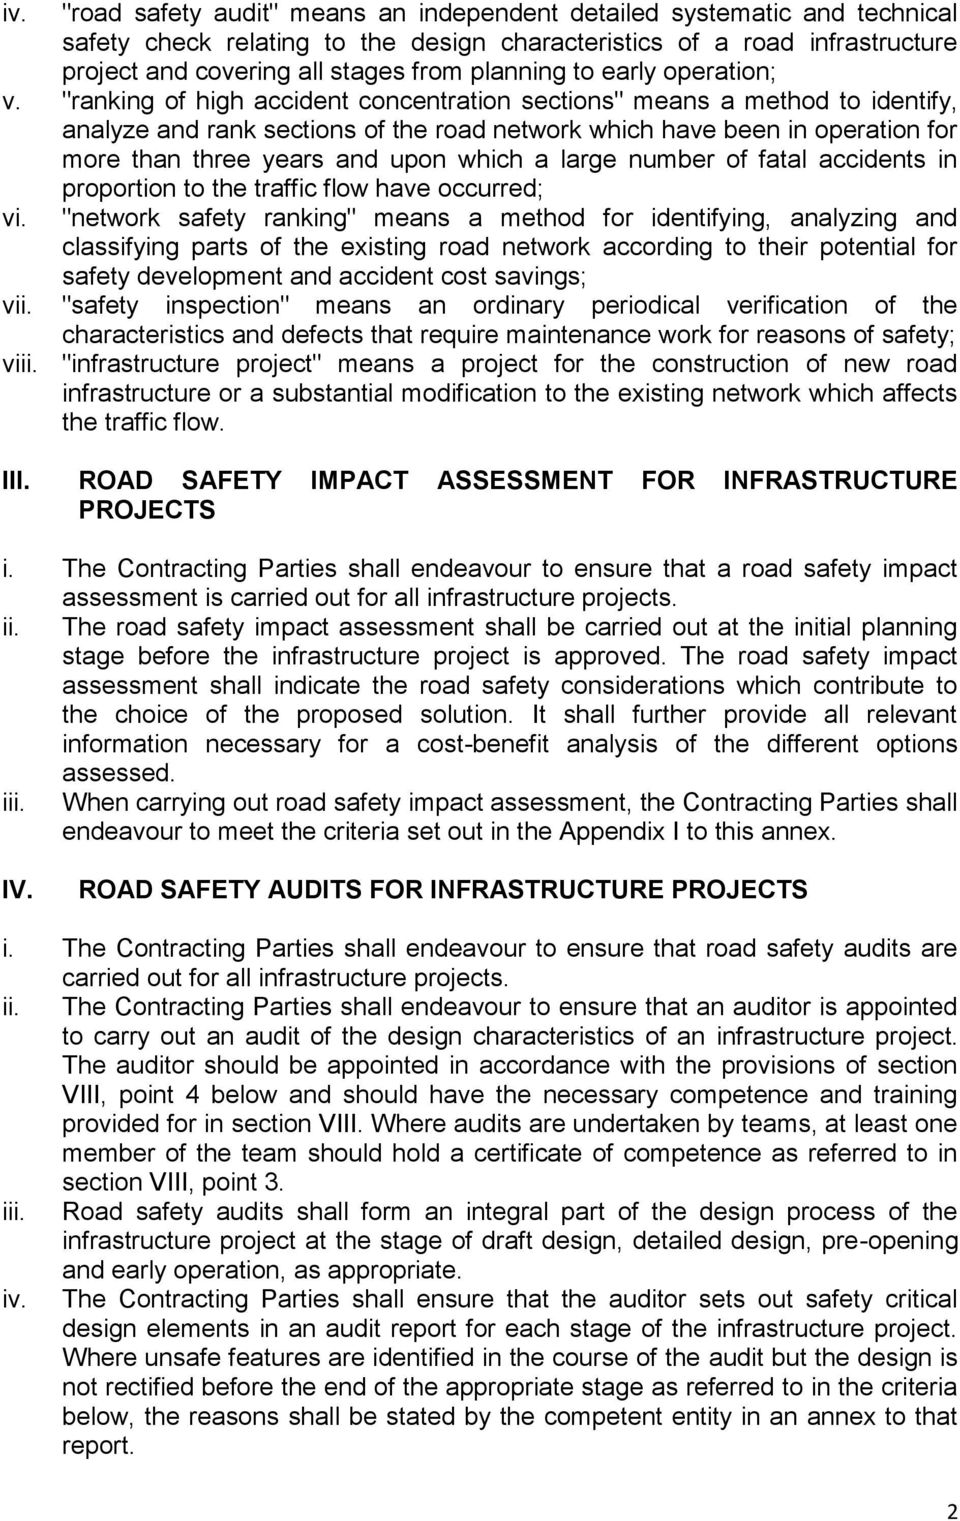 """ranking of high accident concentration sections"" means a method to identify, analyze and rank sections of the road network which have been in operation for more than three years and upon which a"